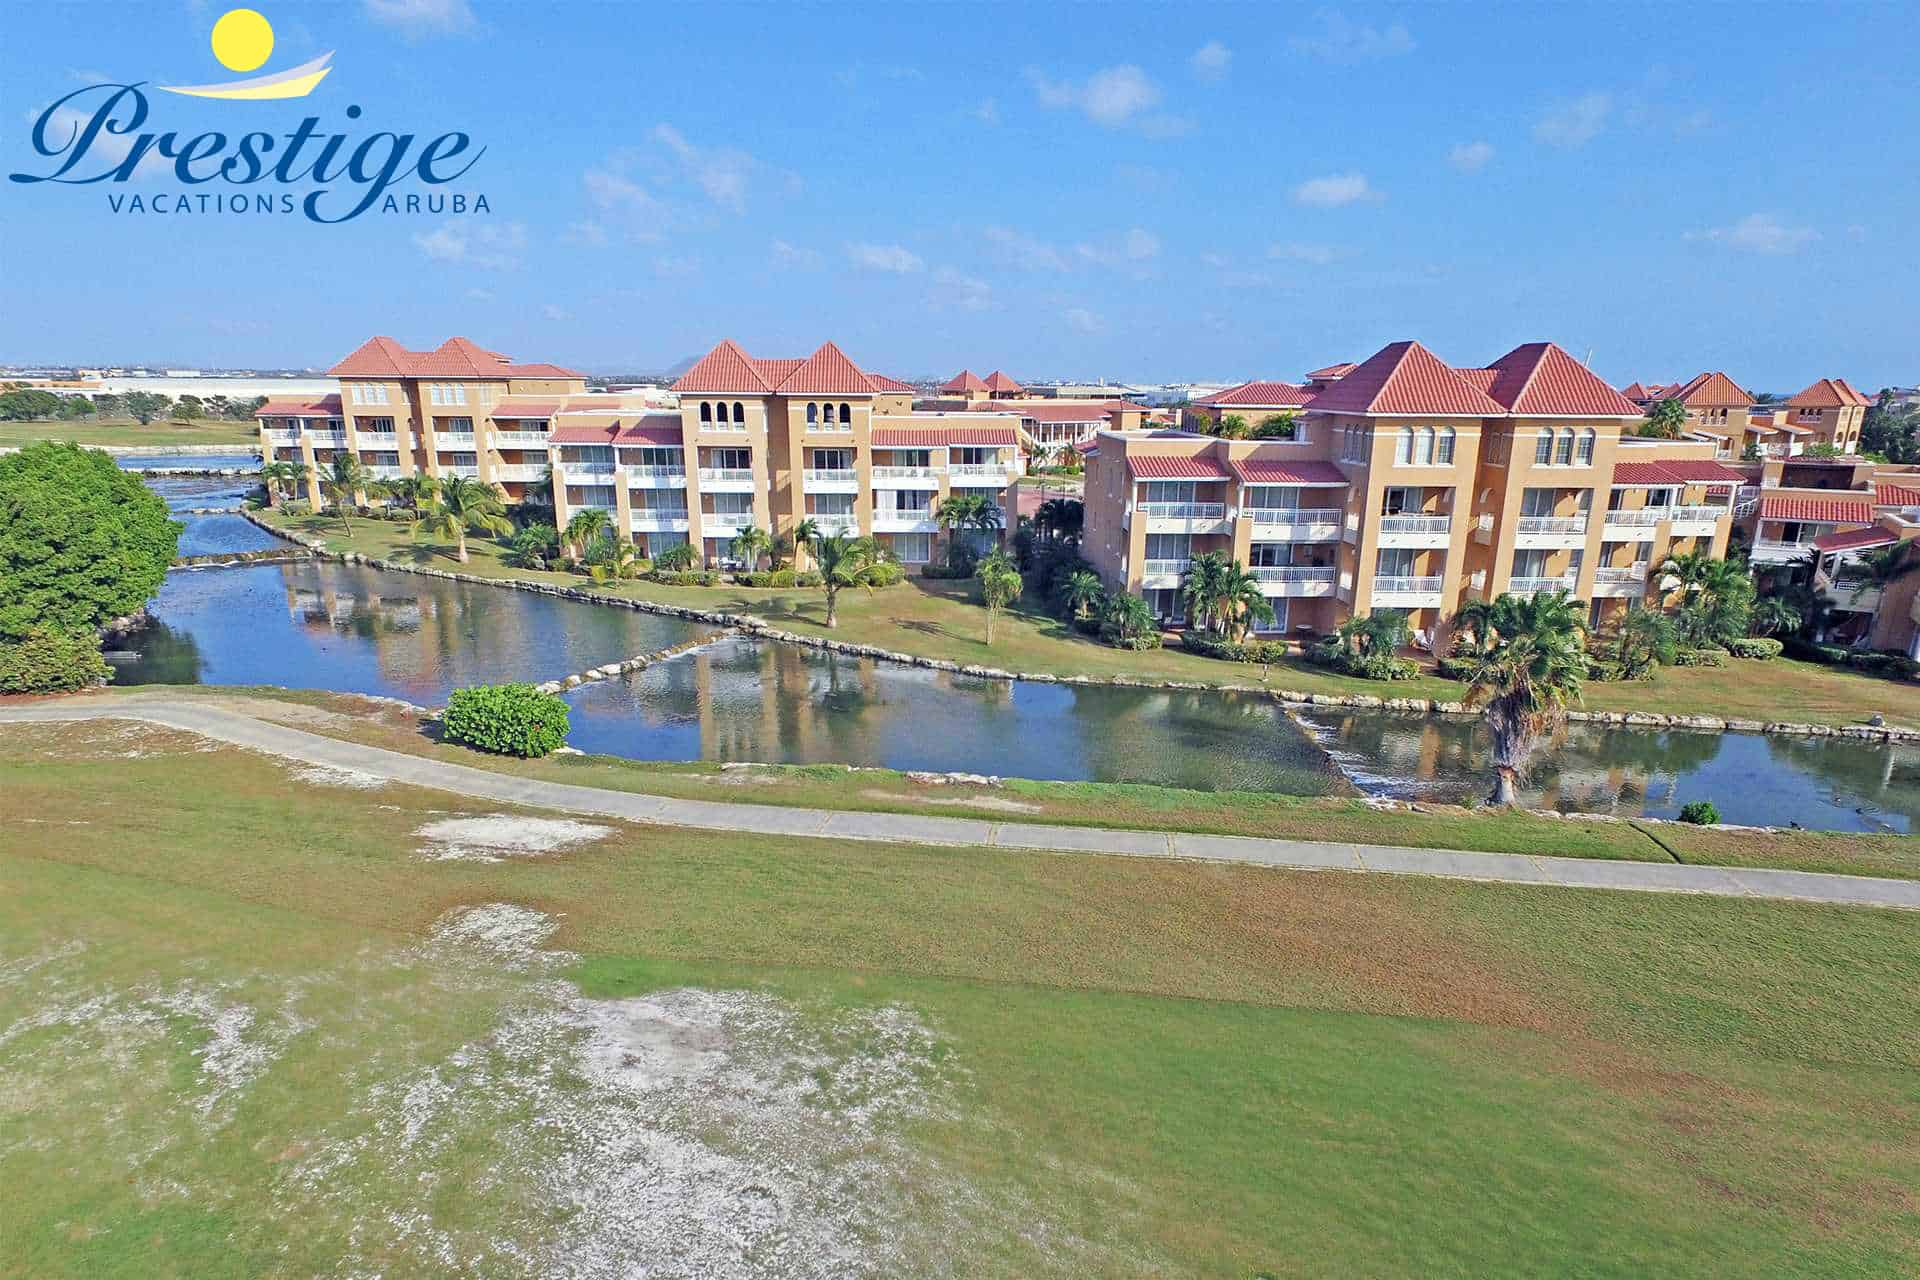 The Residences, a collection of prime residential condos within these 3 buildings at the Divi resort